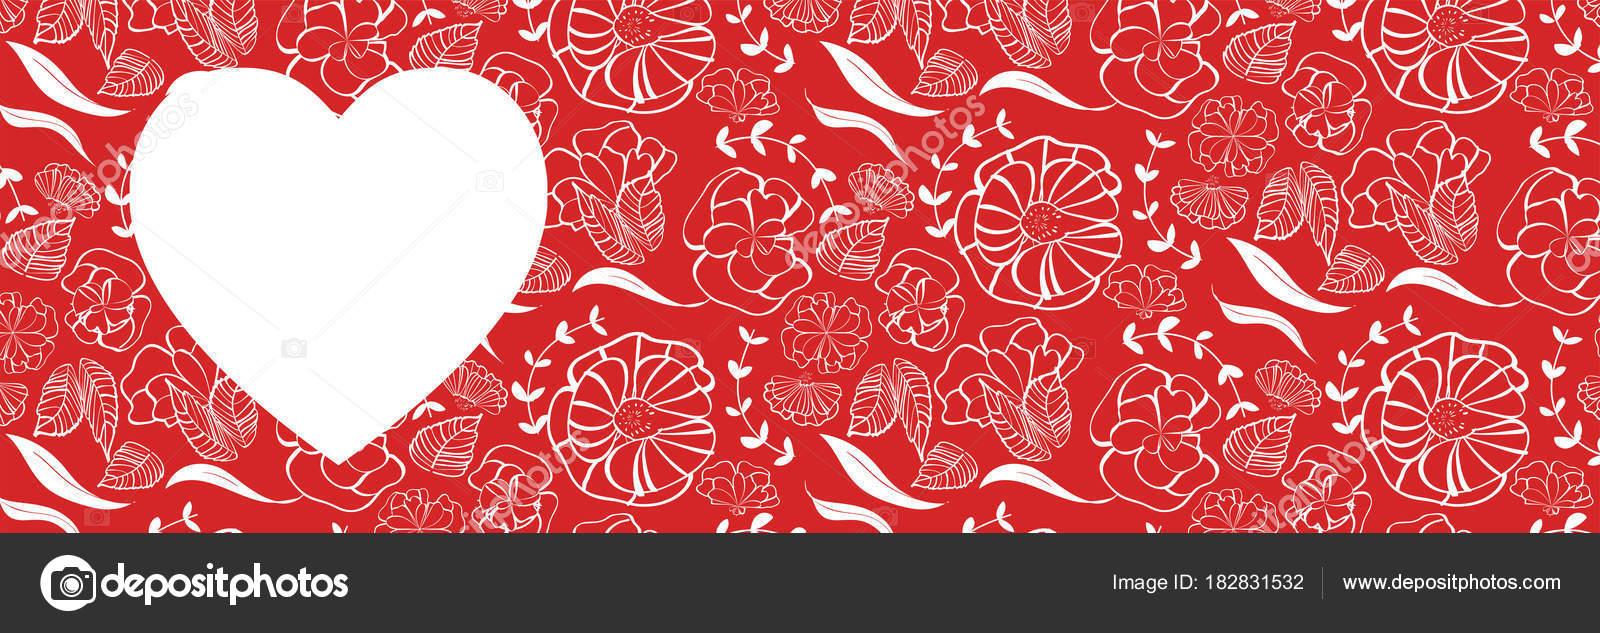 Red Heart Shape Floral Pattern Background Love Romance Wedding Marriage Stock Vector C Mm Studio 182831532